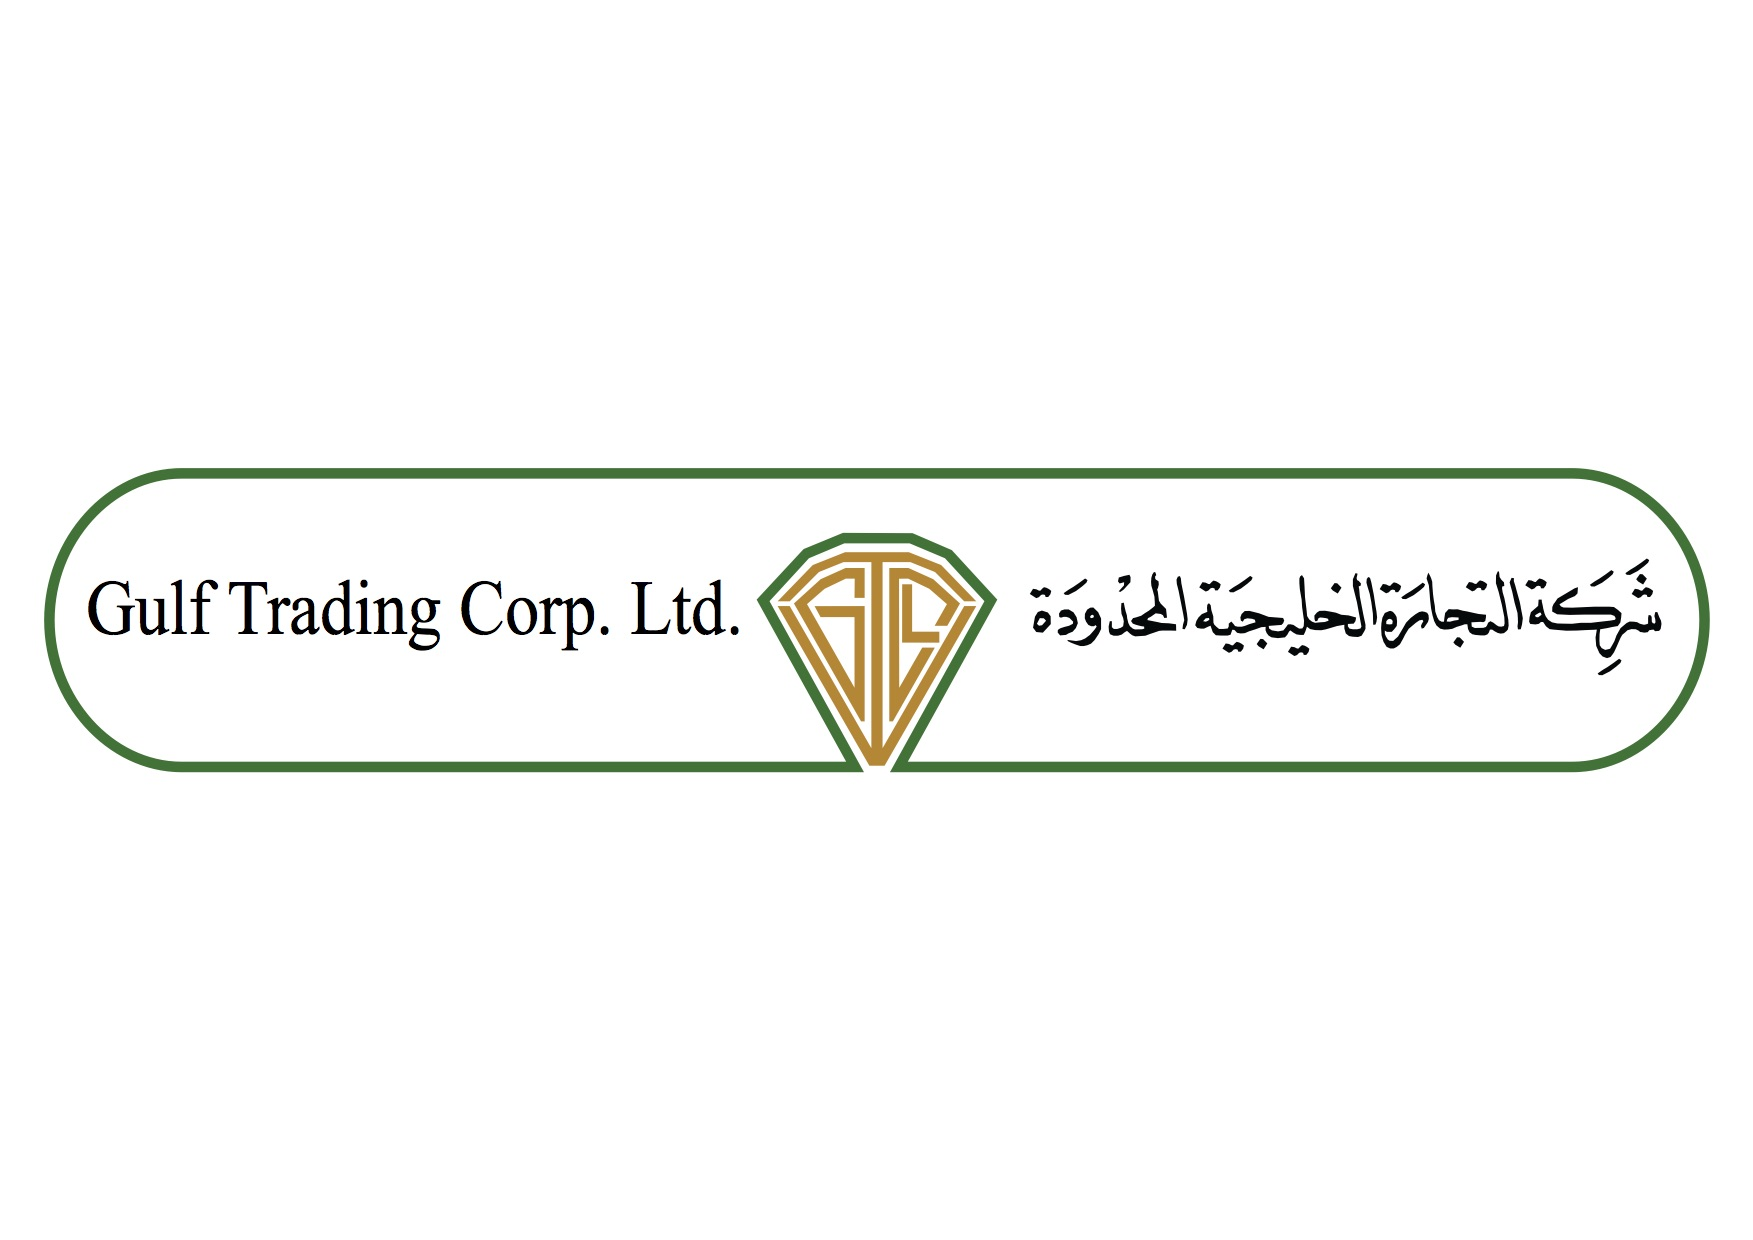 GULF TRADING CORPORATION LIMITED